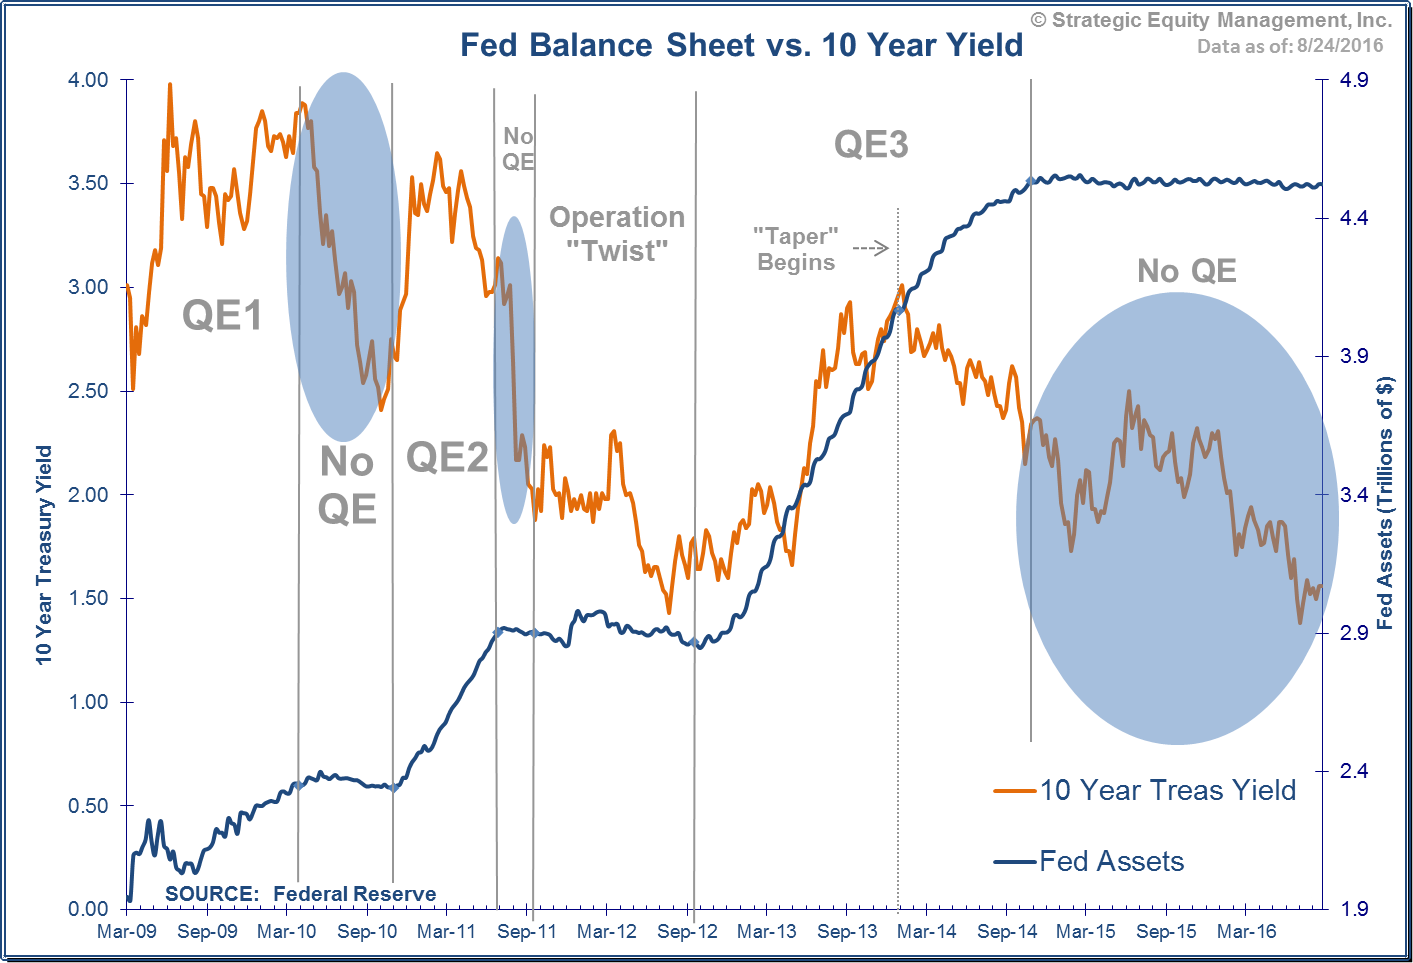 Can the Fed Control Interest Rates?